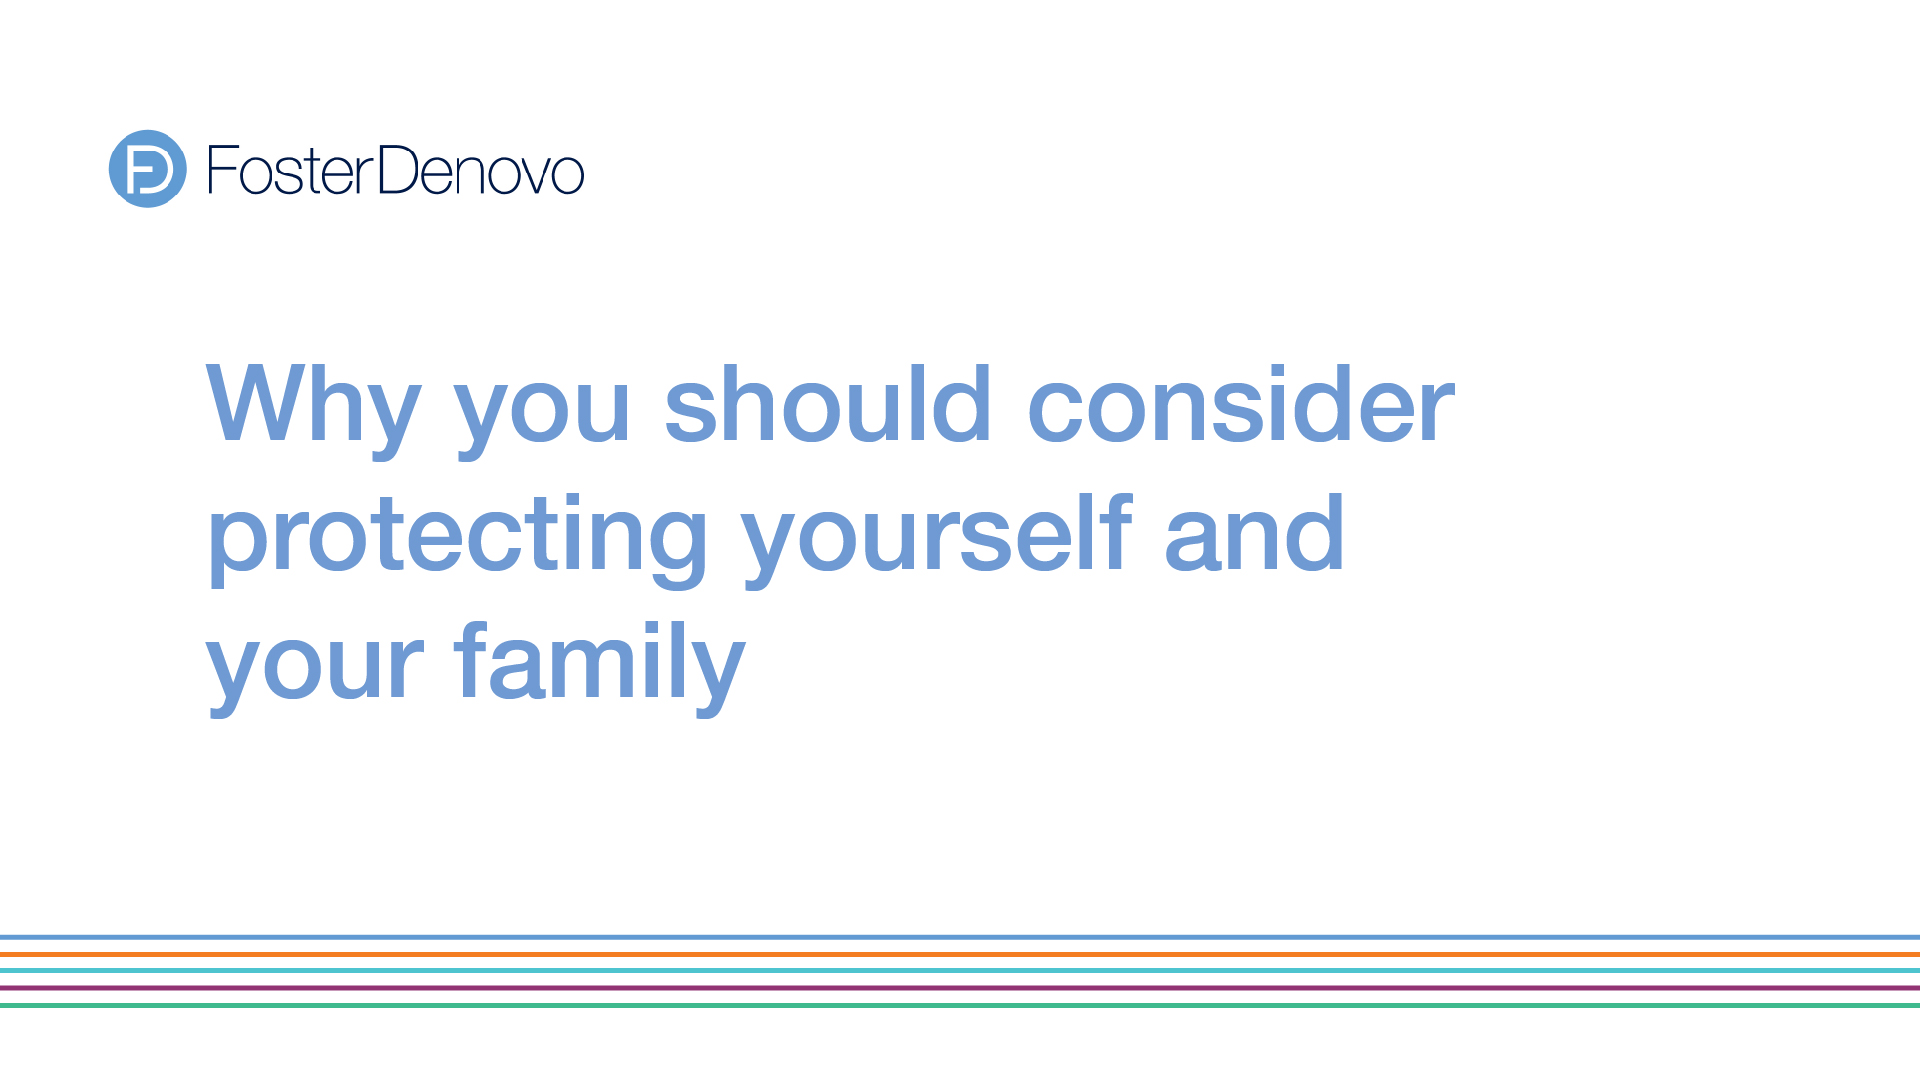 Protecting family & yourself